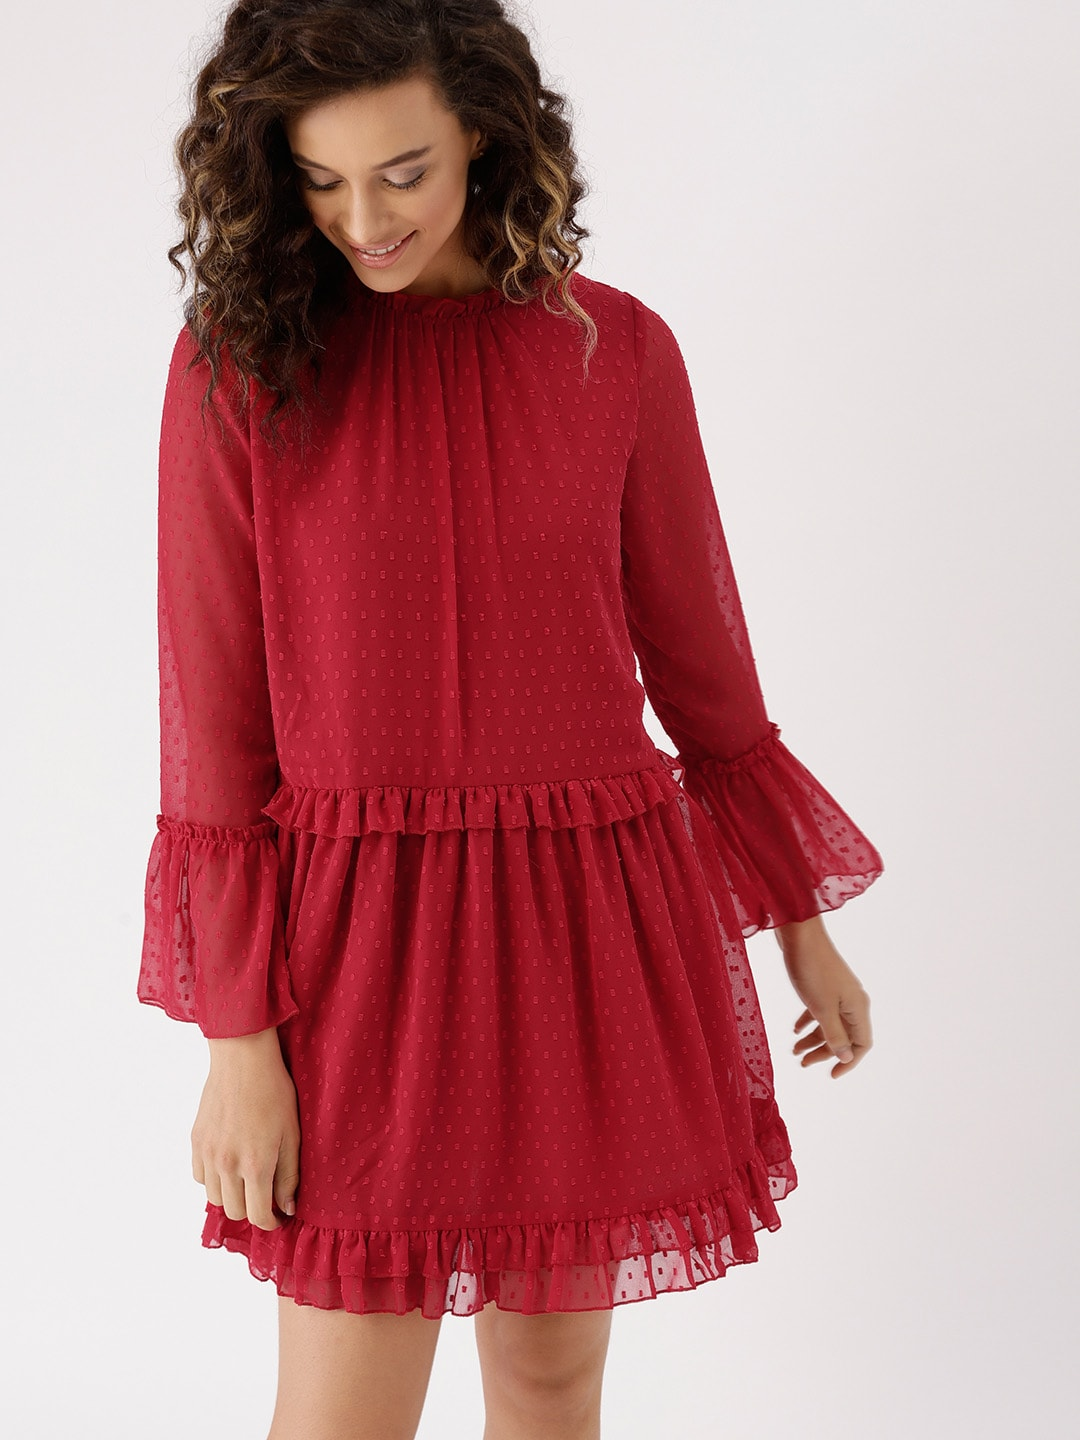 acac6f0815a Lace Dress - Buy Lace Dresses for Women   girls Online